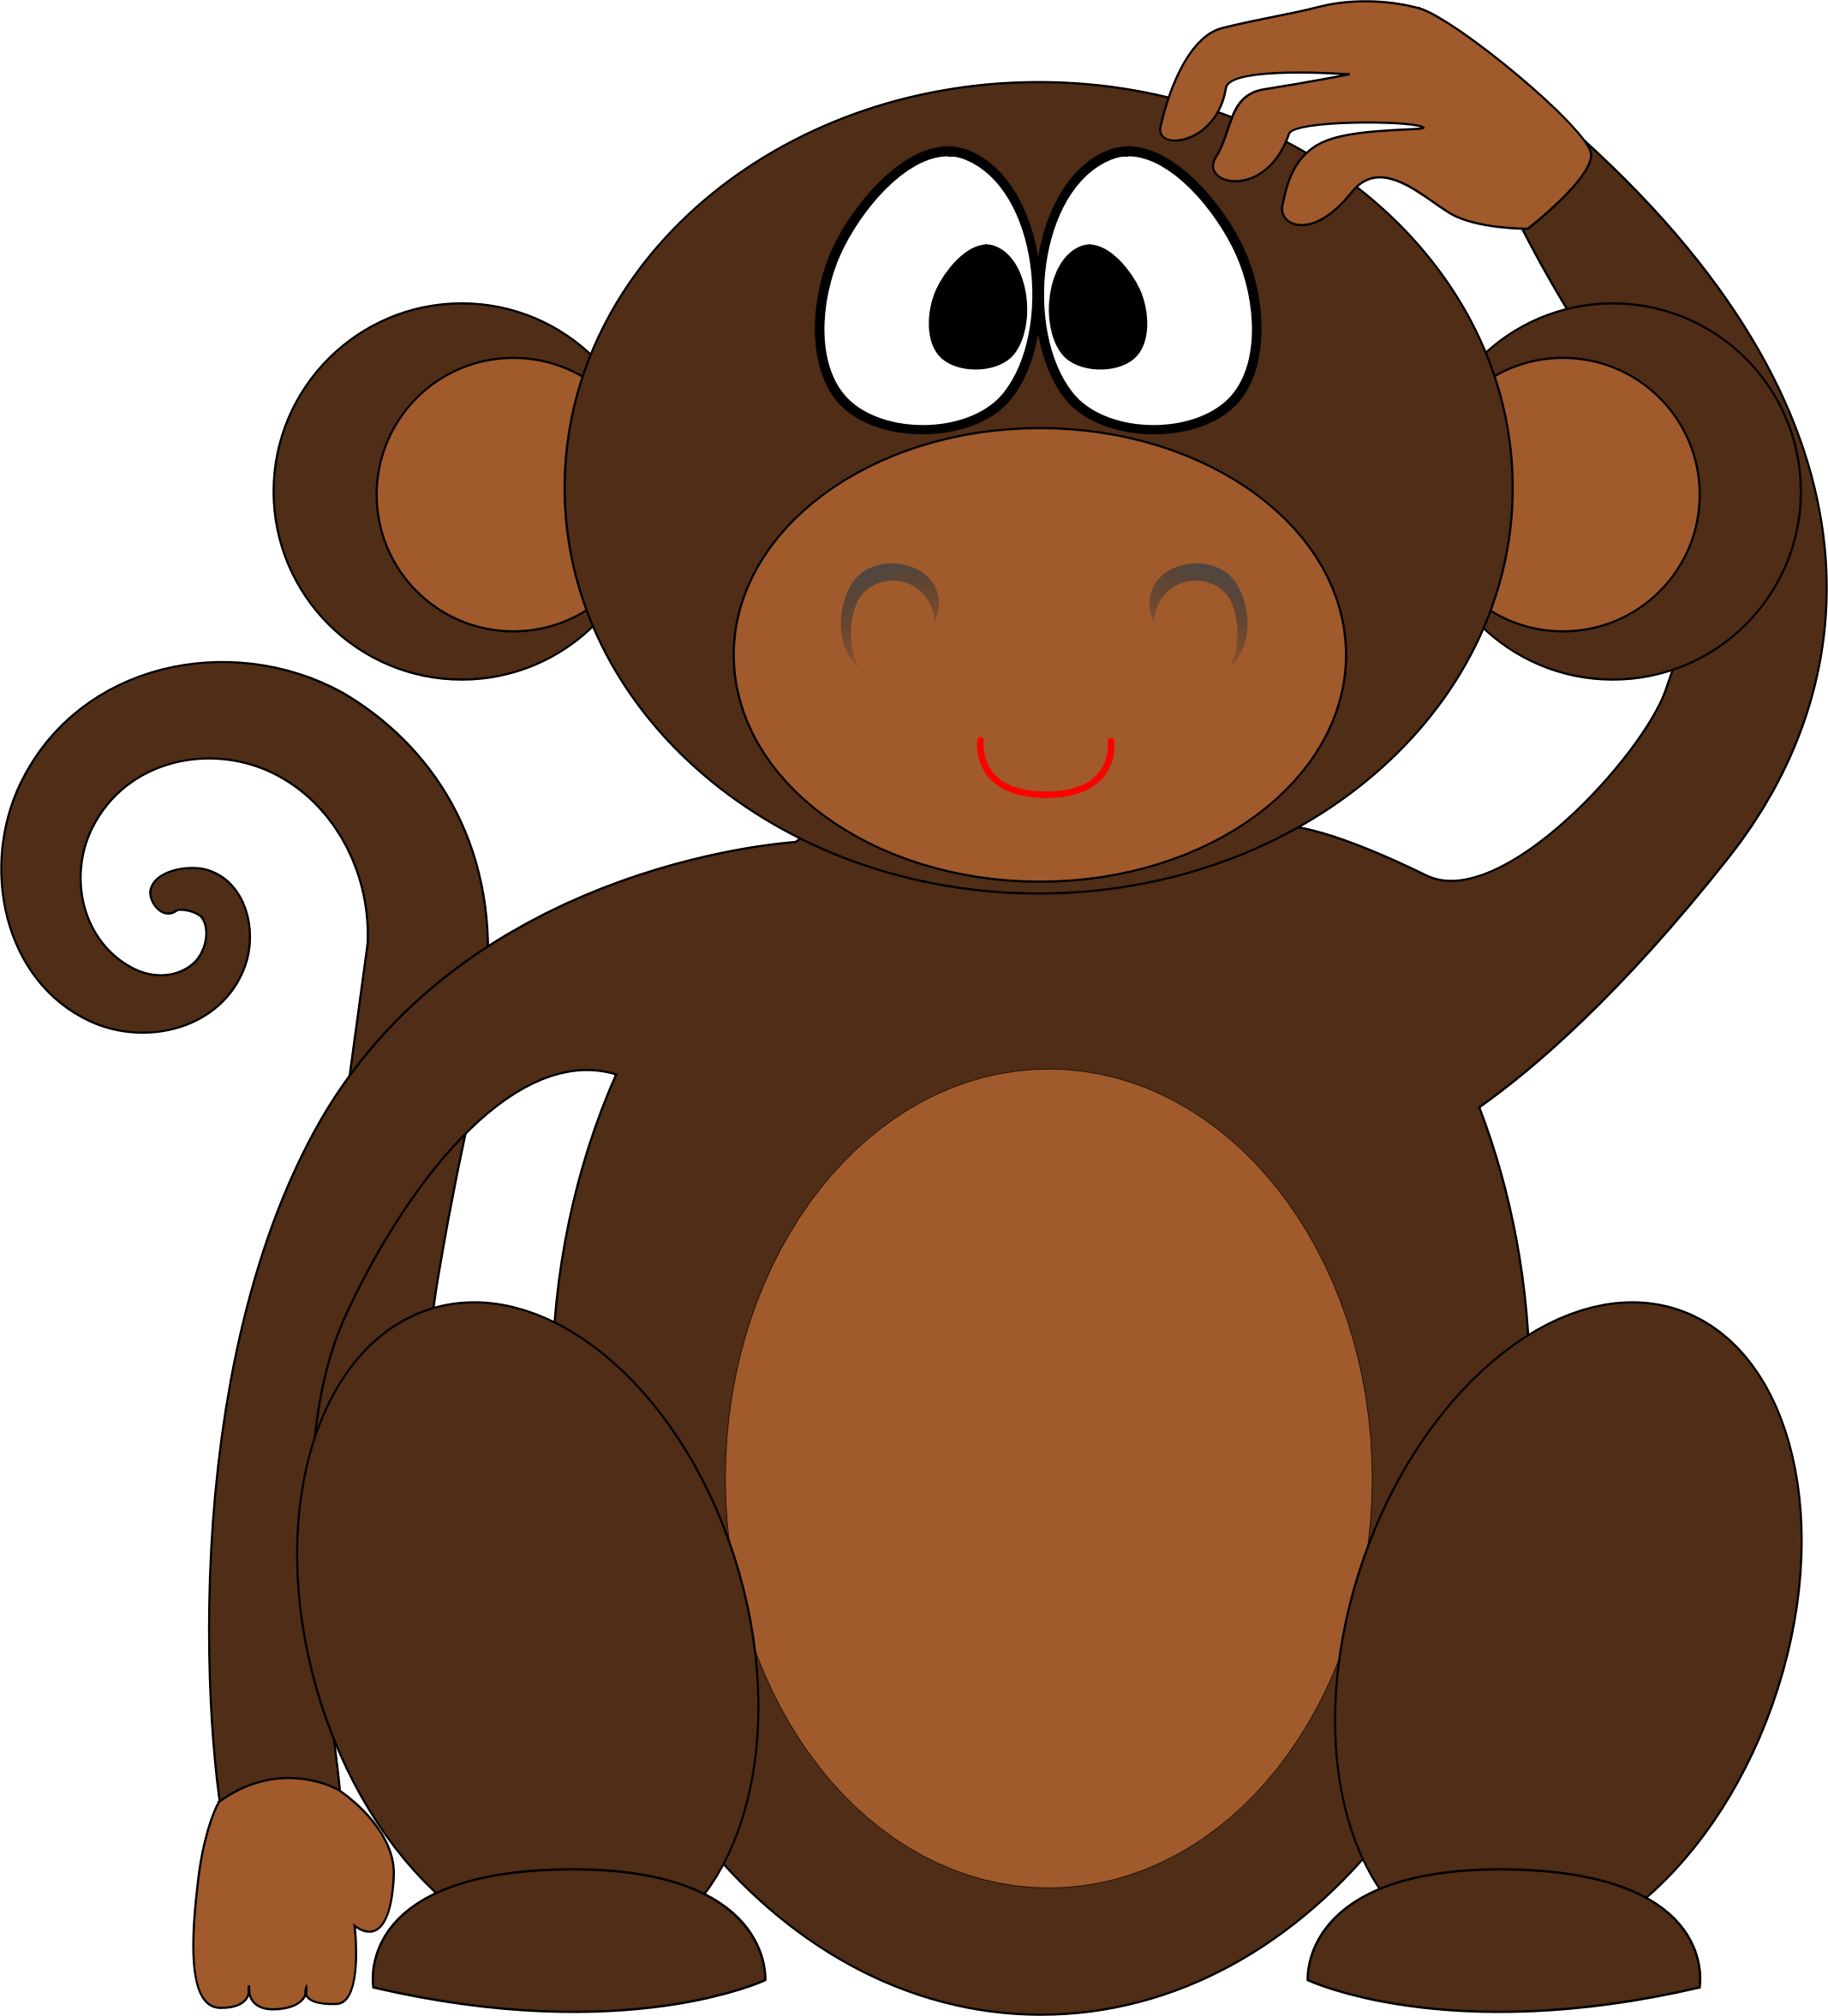 jpg black and white download Cartoon monkey big image. Ape clipart easy